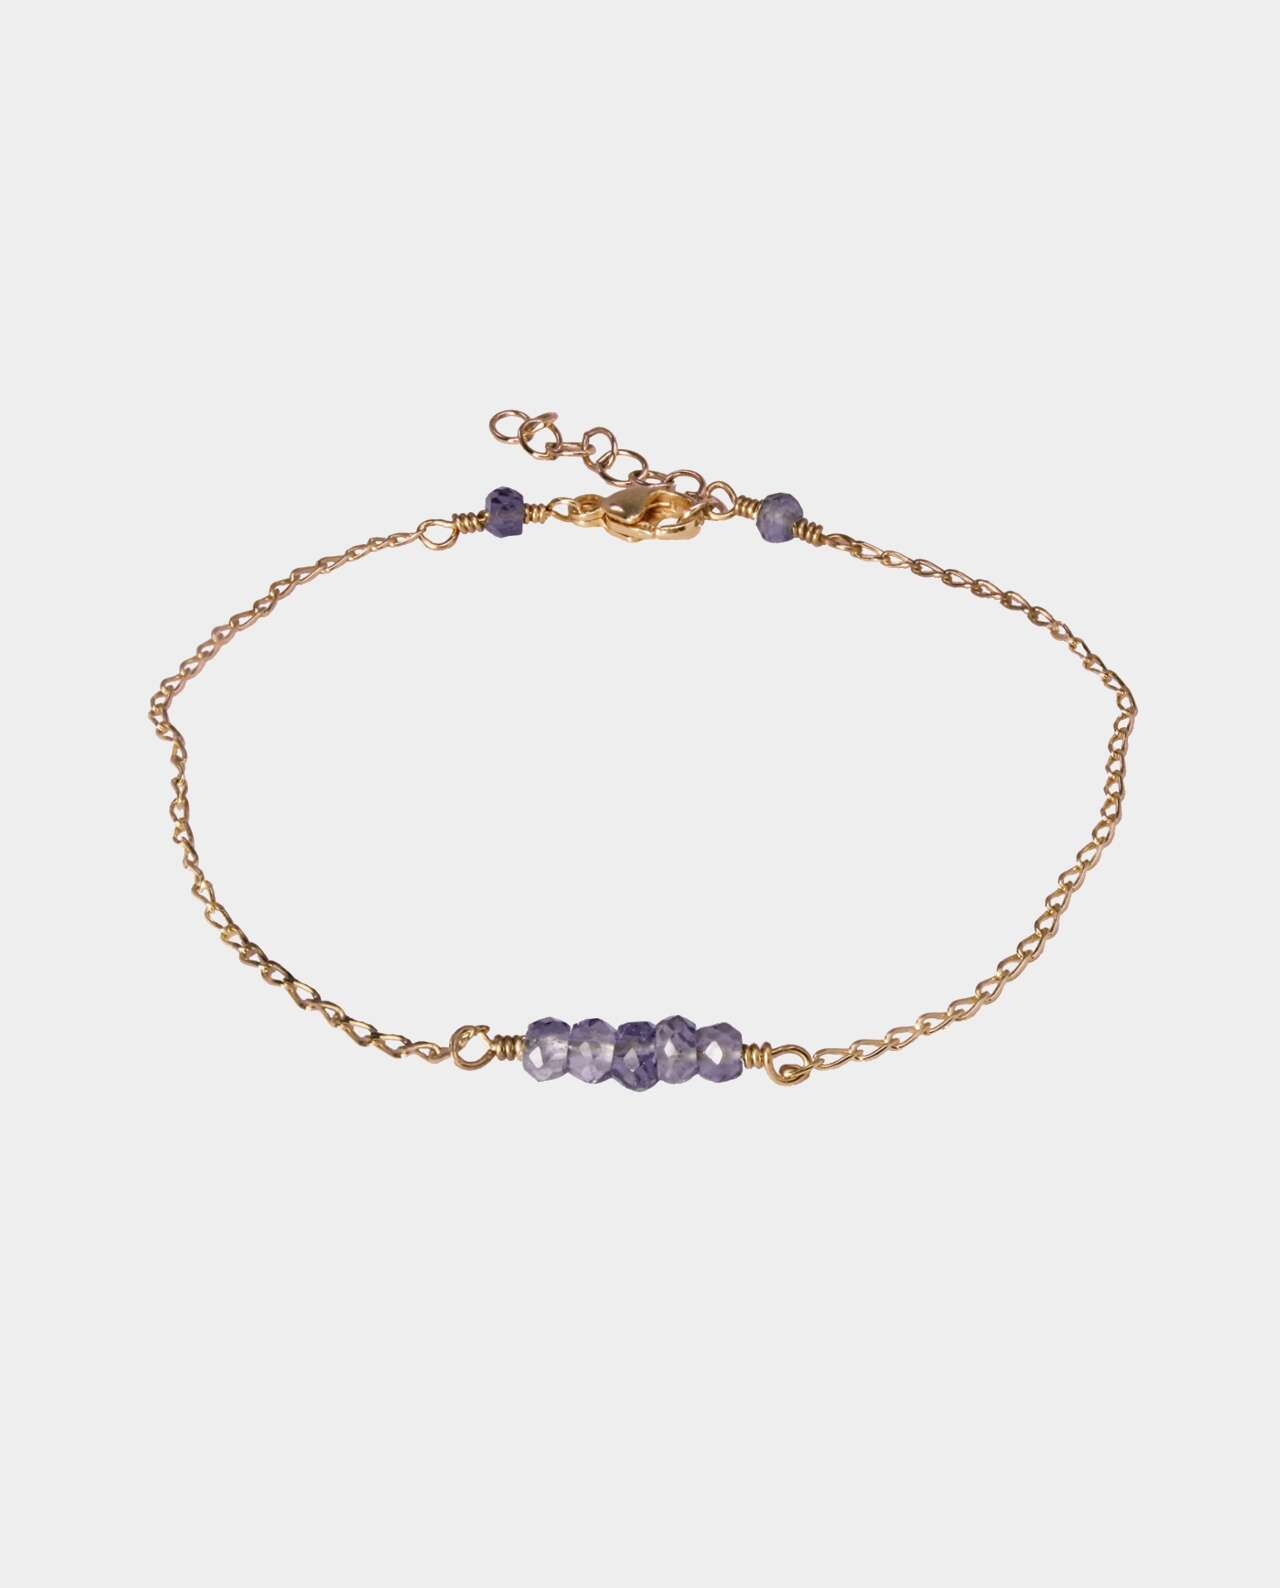 Handmade bracelet with iolites and sterling silver plated with 18 carat gold without nickel